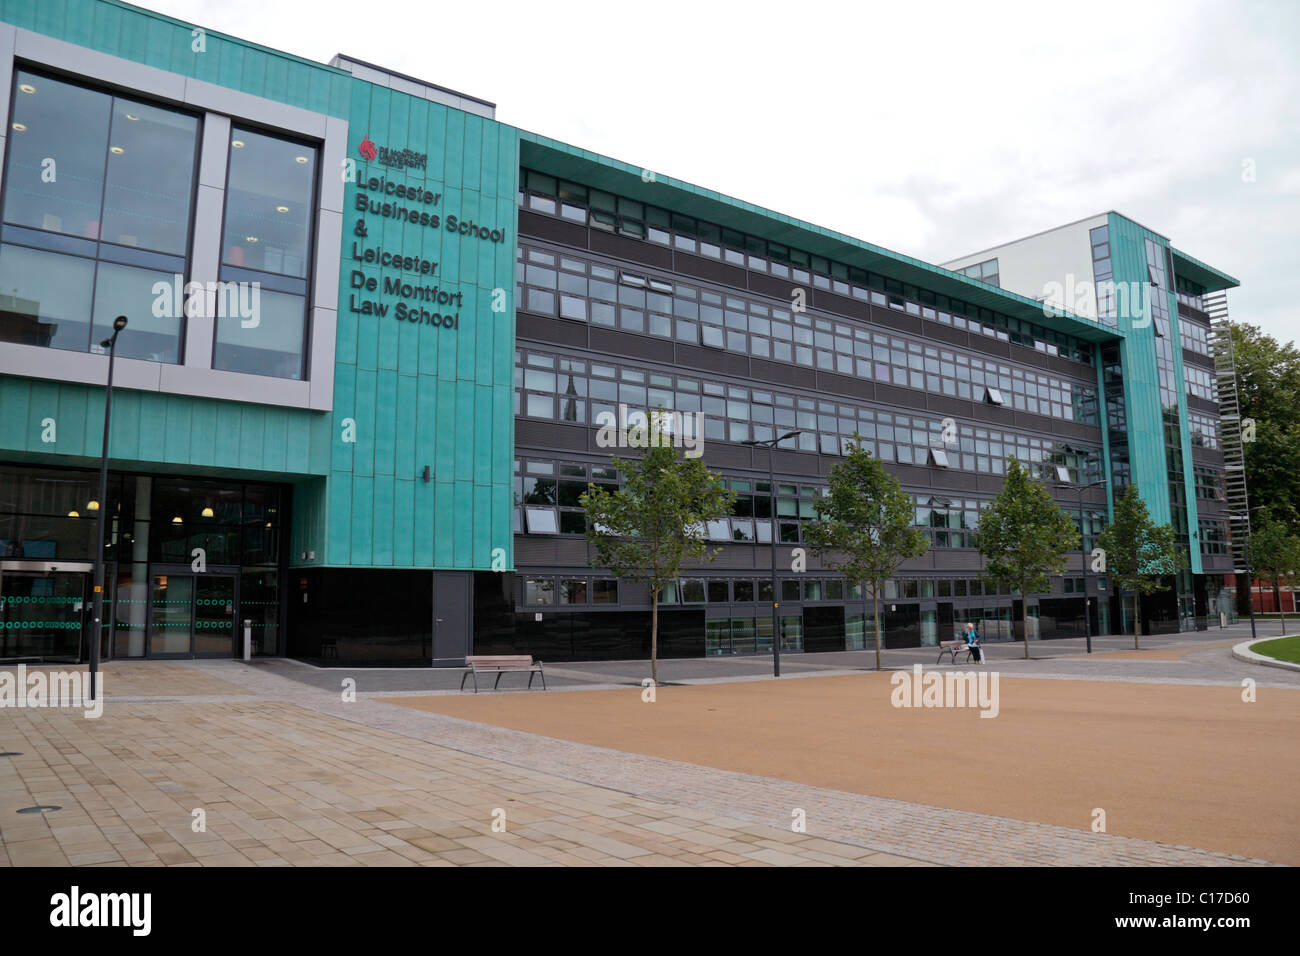 The Leicester Business School and Law School building of De Montfort University (DMU) in Leicester, England, UK. - Stock Image